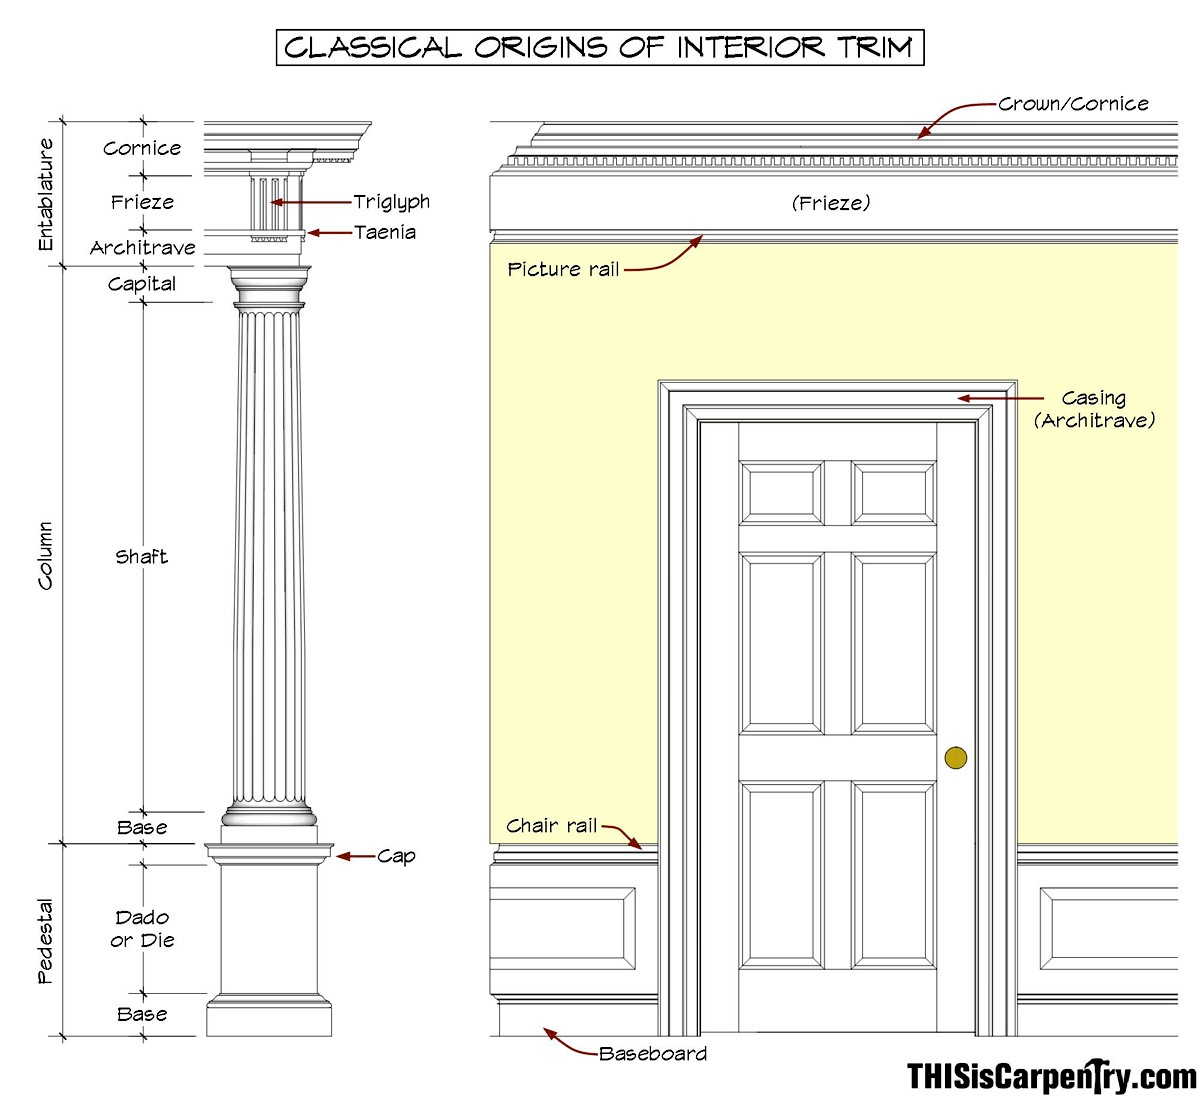 The magical entablature thisiscarpentry for Architectural decoration terms